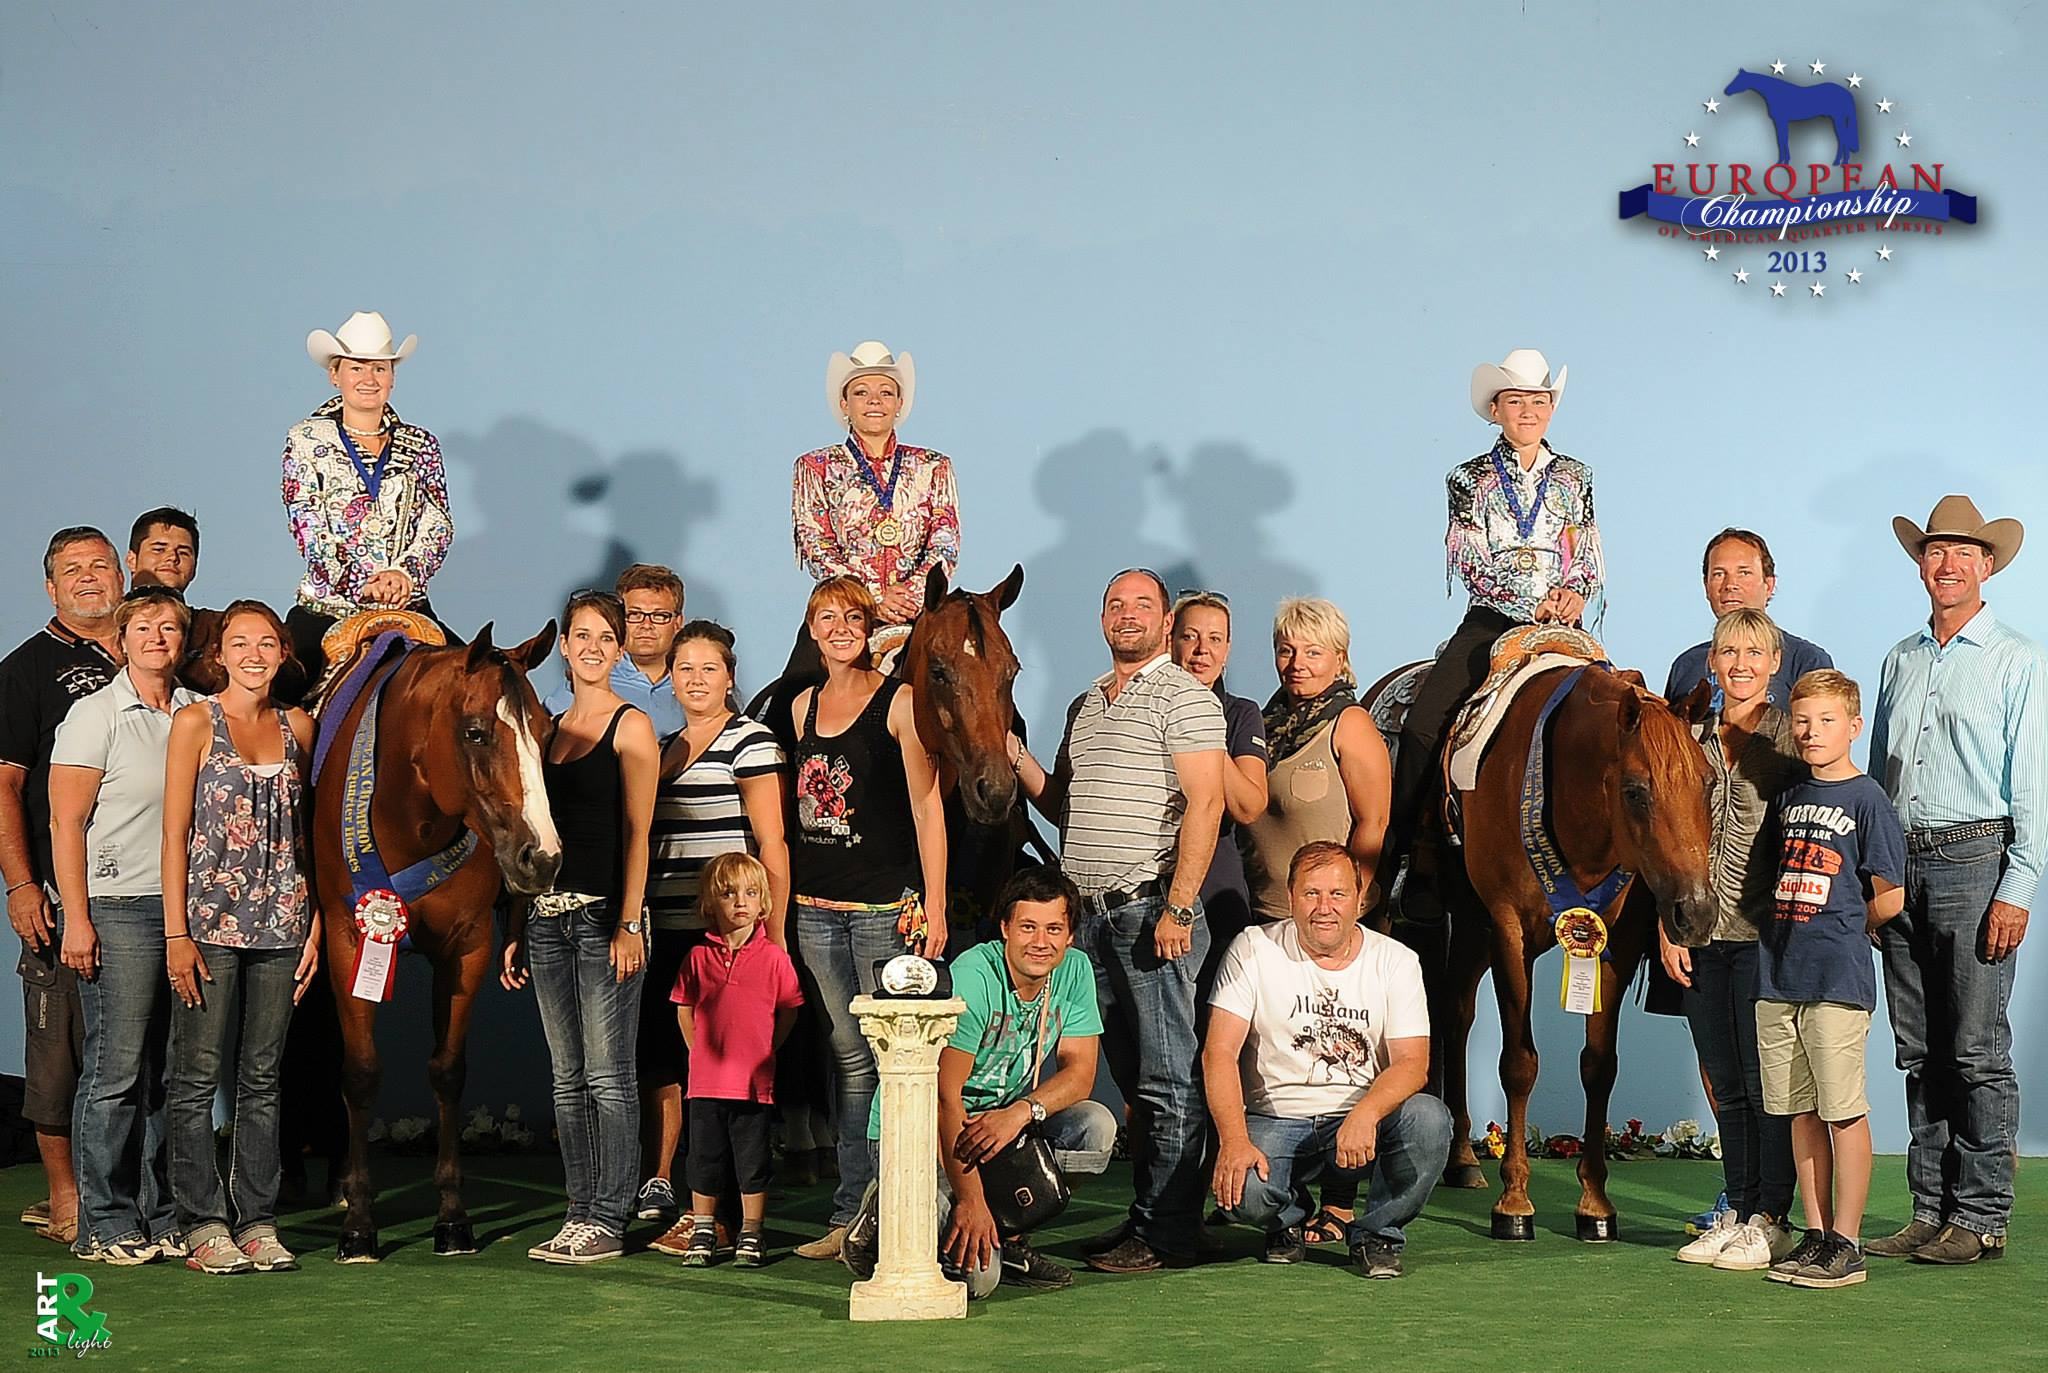 Youth pleasure medals at the 2013 european championships 0